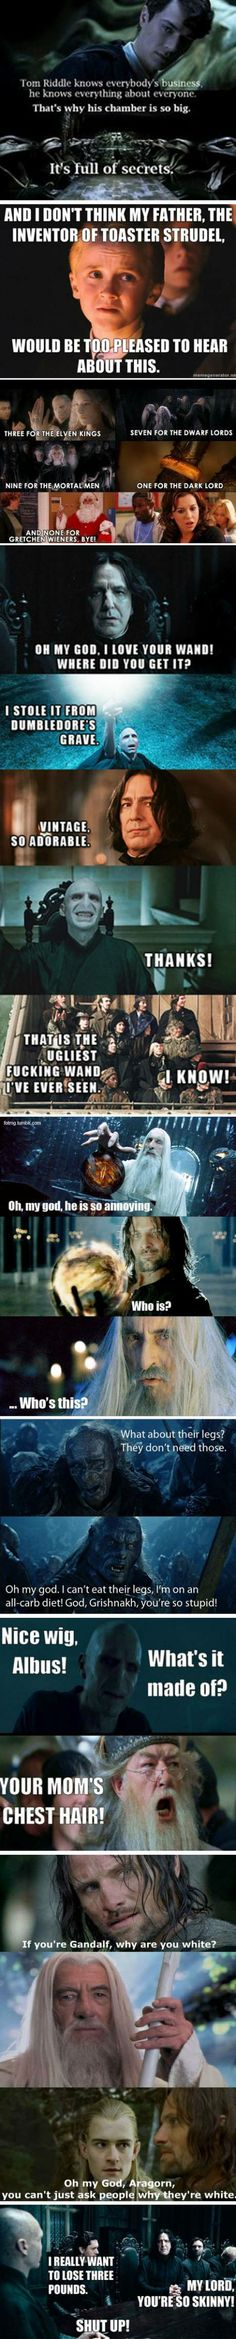 Boo you whorecrux!<< This! And the last one made me laugh so hard! Harry Potter/Mean Girls crossover